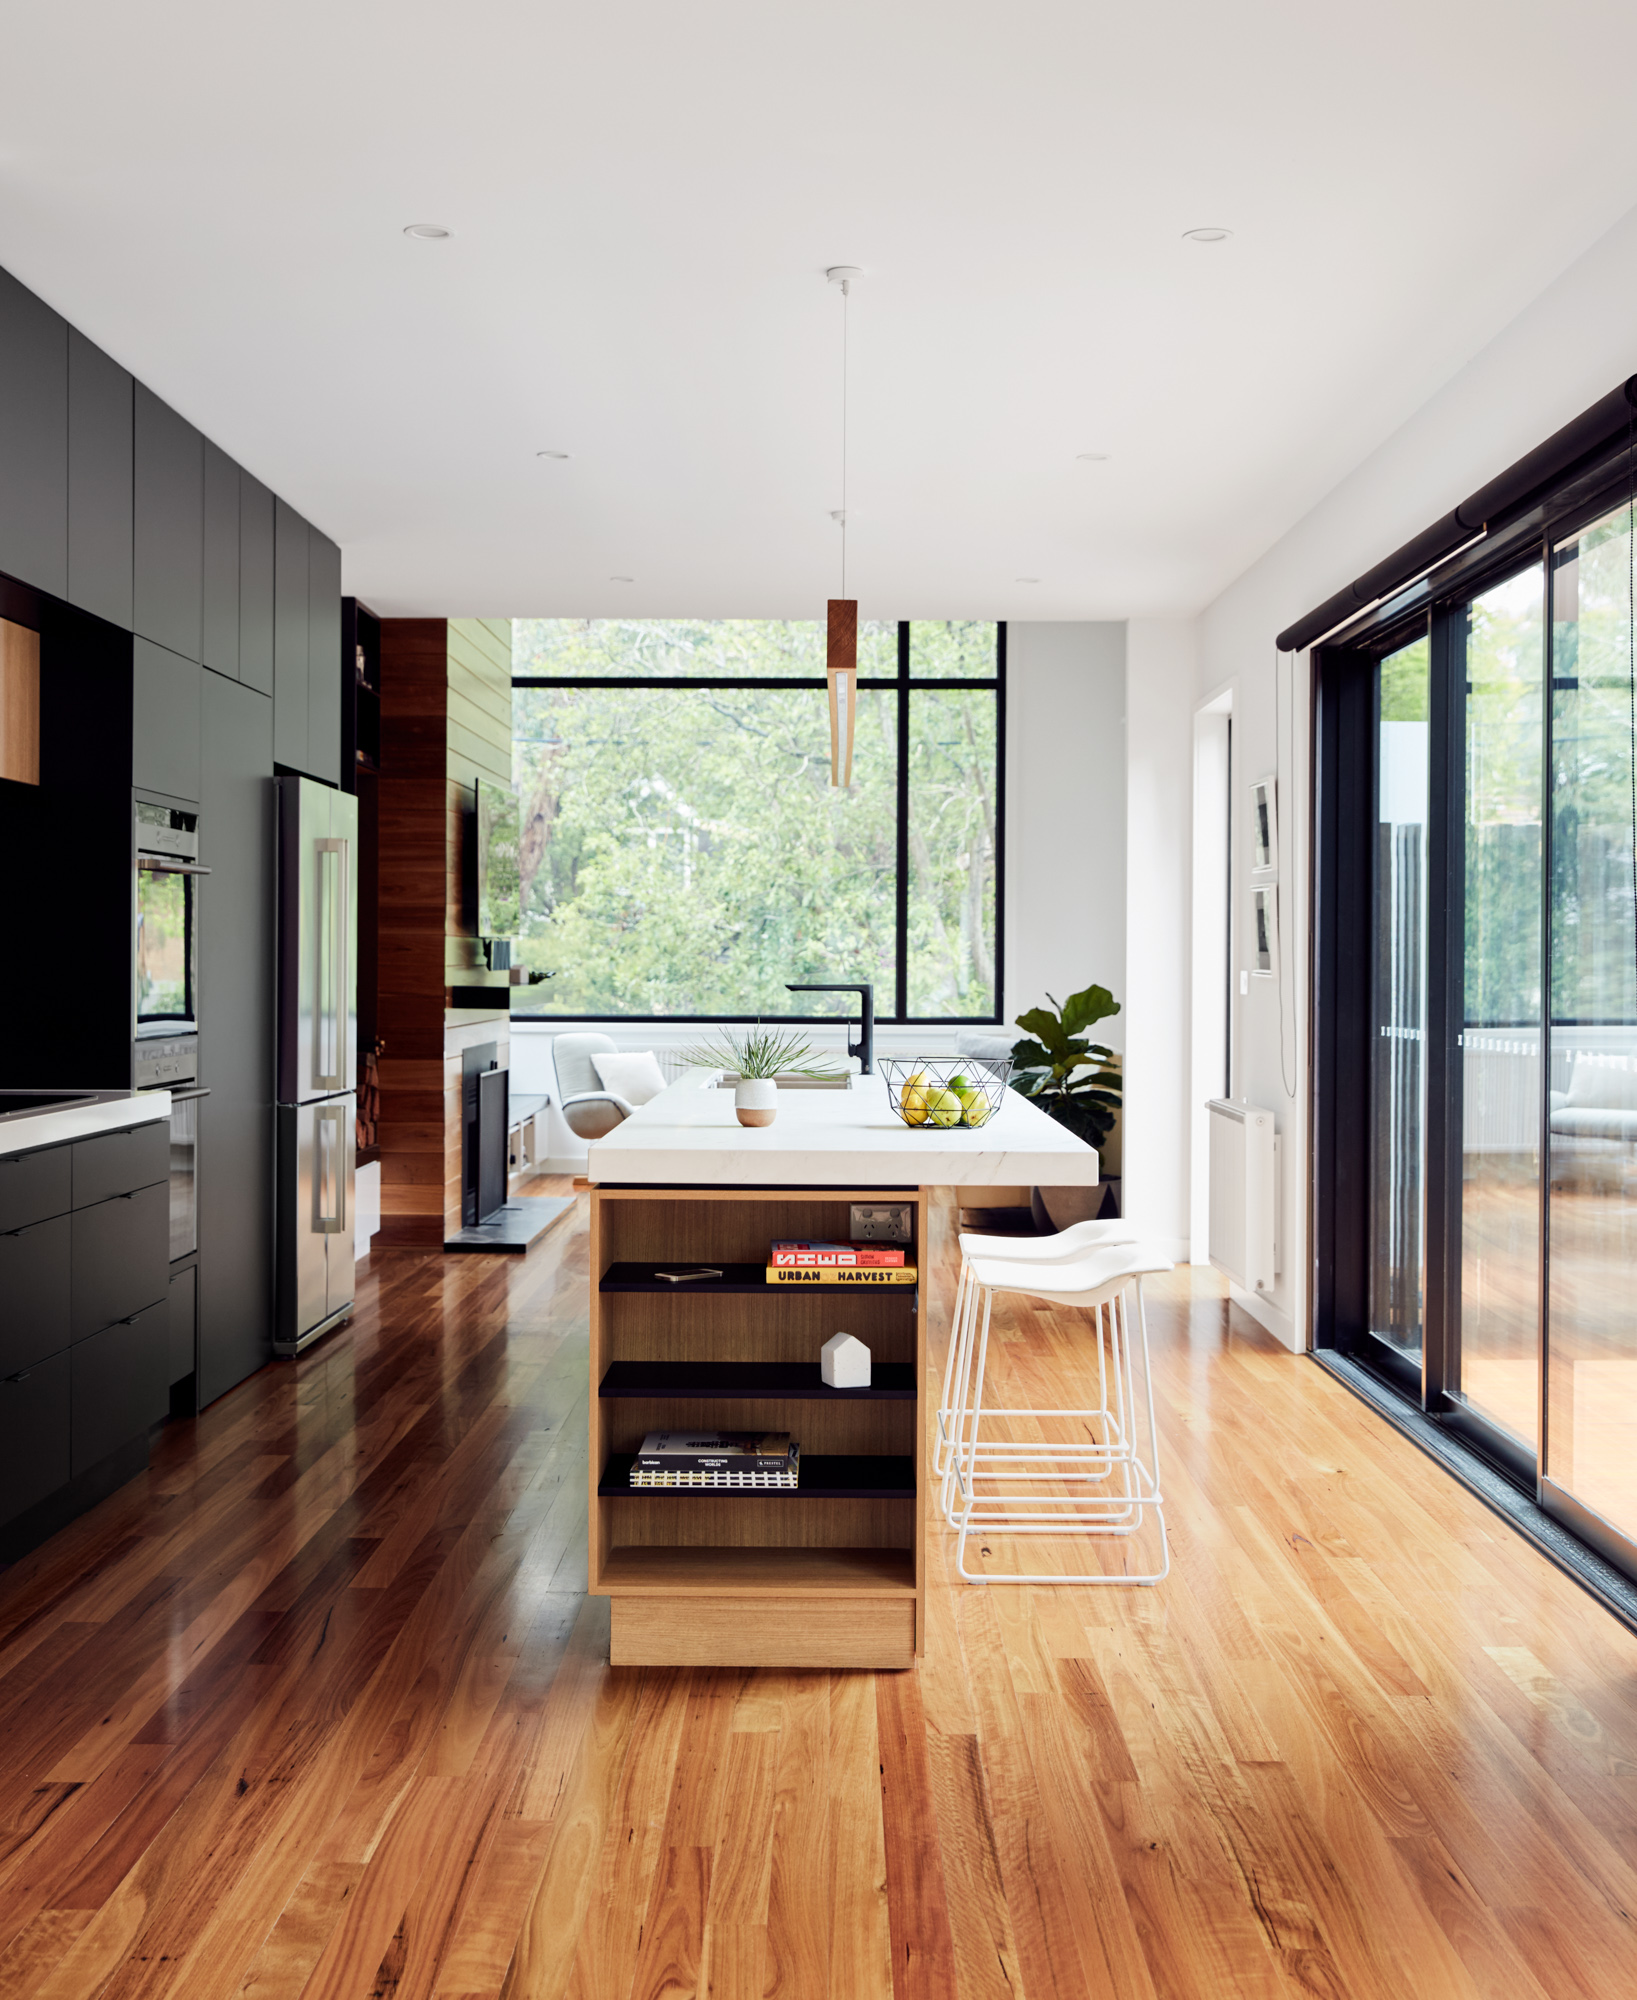 Gallery Of Blackburn House By Archiblox Local Australian Architecture & Design Blackburn, Vic Image 3